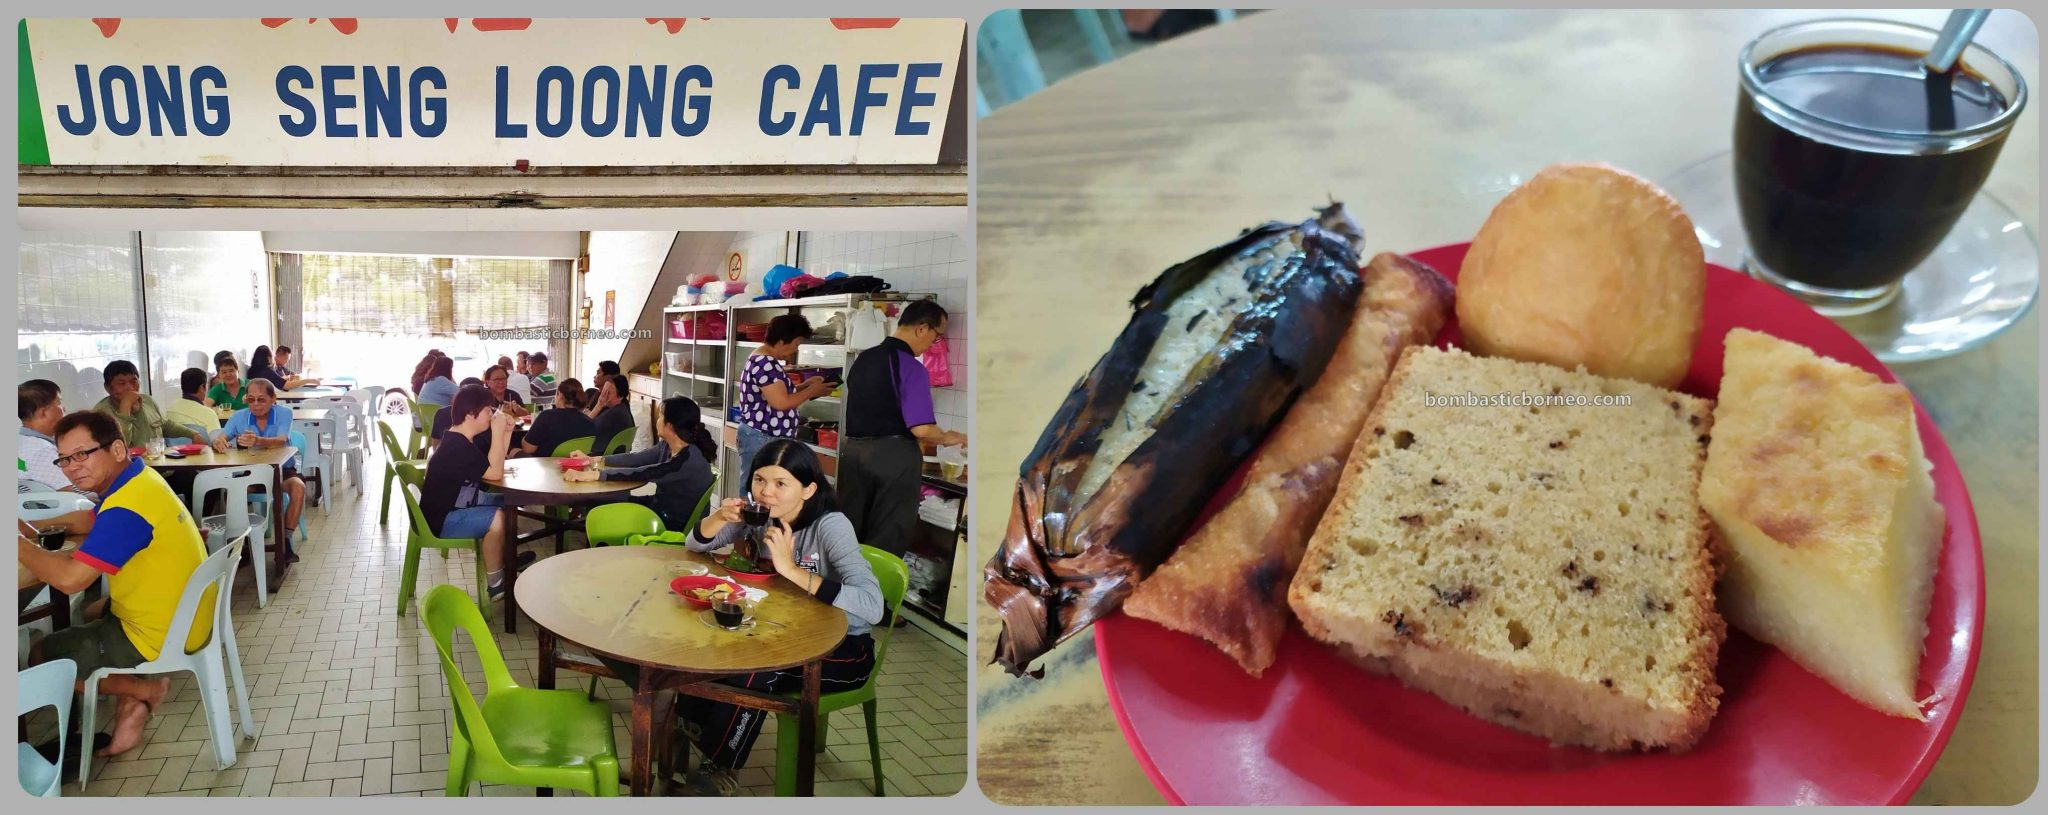 snacks, backpackers, Destination, exploration, traditional, local cakes, Miri, Malaysia, town, tourist attraction, Borneo, 穿越婆罗洲砂拉越, 马鲁帝早市,